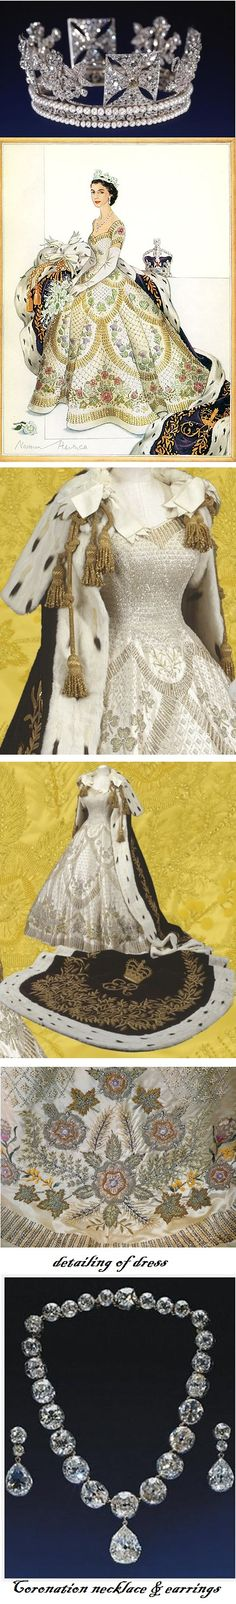 Queen Elizabeth's coronation gown, jewelry, and crown.